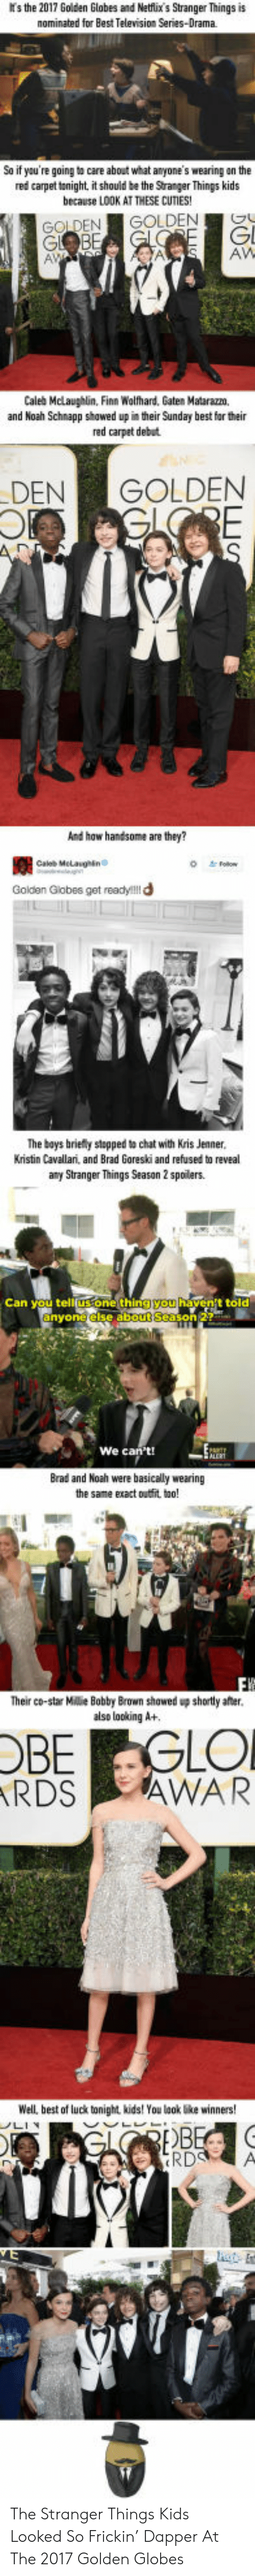 Golden Globes: ts the 2017 Golden Globes and Netflix's Stranger Things is  nominated for Best Television Series-Drama  So if you're going to care about what anyone's wearing on the  red carpet tonight, it should be the Stranger Things kids  because LOOK AT THESE CUTIES!  GOLDEN GOLDENO  Gl  AW  Caleb Mclaughlin, Finn Wolfhard, Gaten Matarazm,  and Noah Schnapp shawed up in their Sunday best for their  red carpet debut  DENGOLDEN  And haw handsome are they?  蠶  Goldan Giobes get readyl!!d  Caleb Melaughin  The bays briely stopped to chat with Kris Jenner  Kristin Cavallari, and Brad Goreski and refused to reveal  any Stranger Things Season 2 spoilers  one thin  t told  We c  Brad and Noah were basically wearing  the same exact outfit tao!  Their co-star Millie Babby Brown shawed up shortly afer.  also looking A+  OBE GLO  RDS AWAR  Well, best of luck tonight, kids! You look lbke winners  ให้  RD A The Stranger Things Kids Looked So Frickin' Dapper At The 2017 Golden Globes